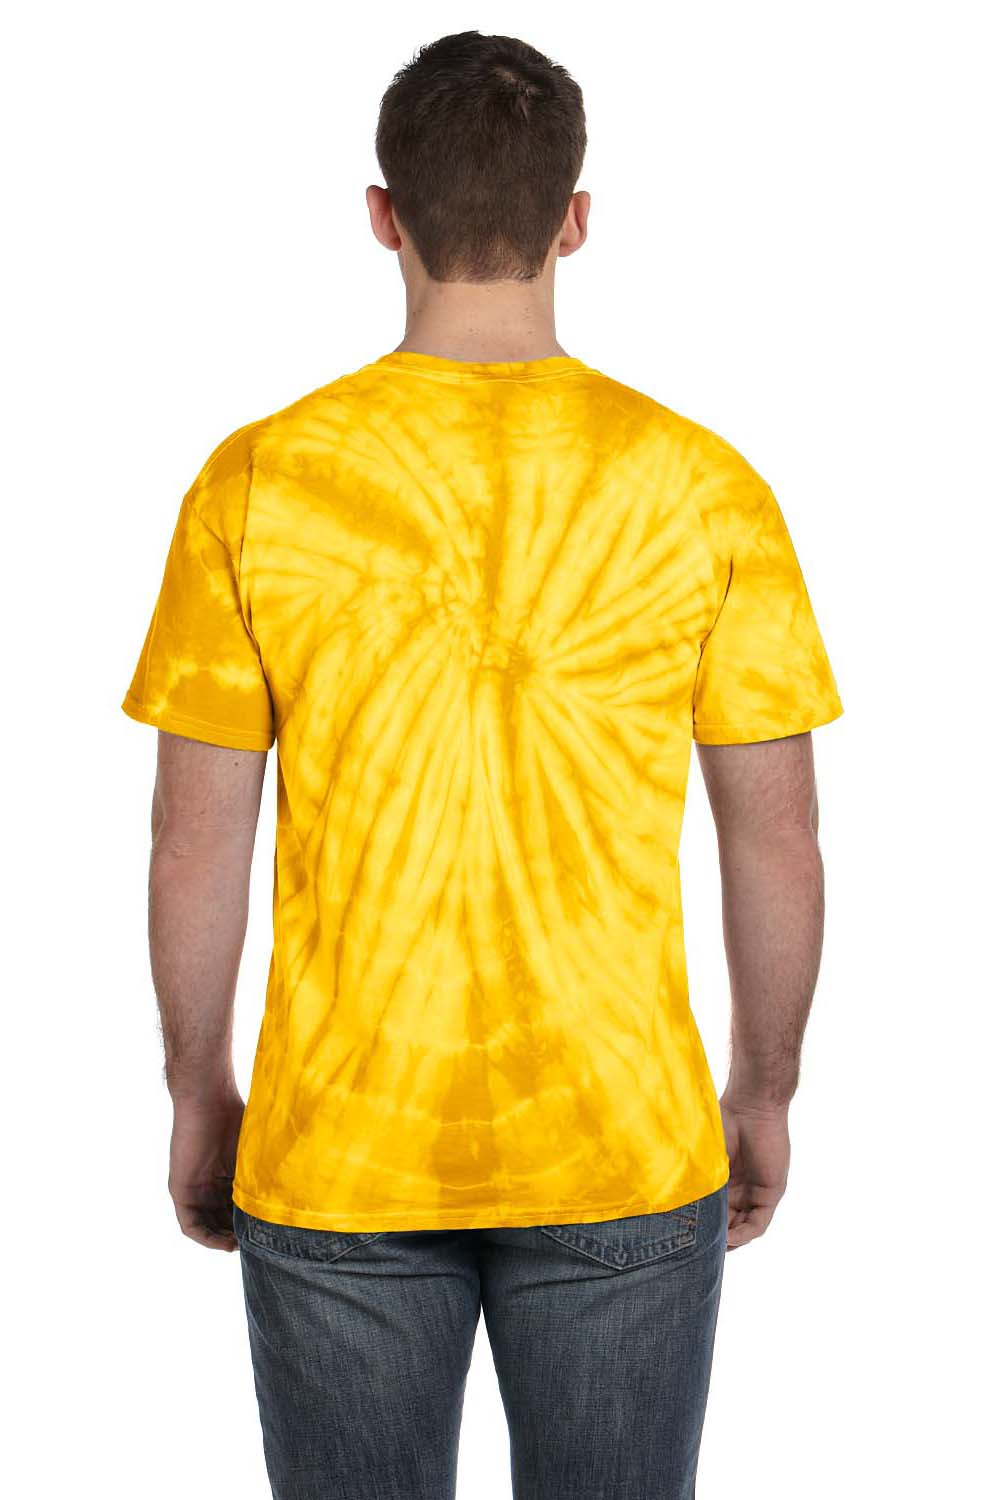 Tie-Dye CD101 Mens Short Sleeve Crewneck T-Shirt Gold Back